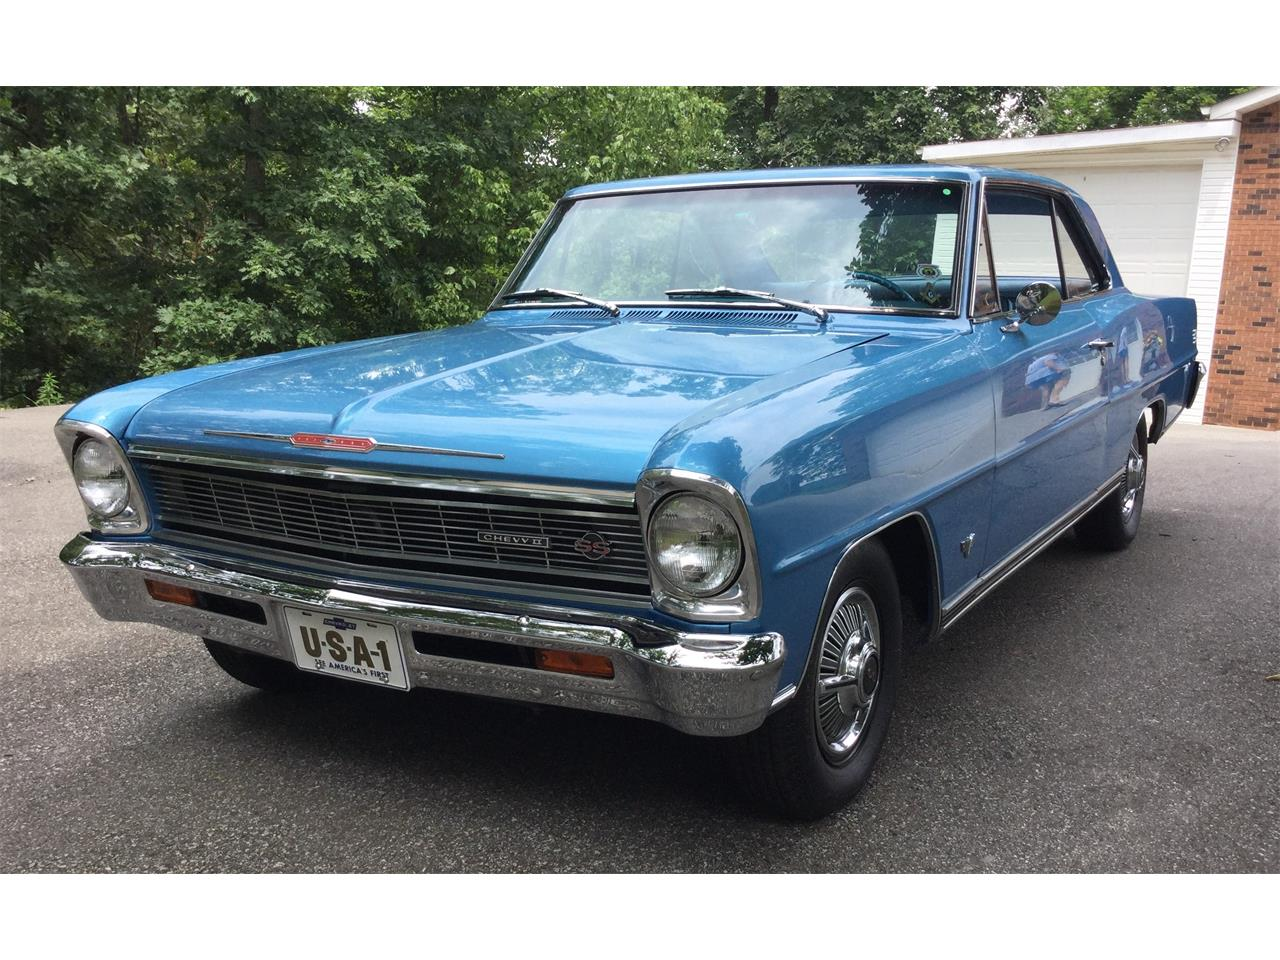 Large Picture of '66 Nova SS located in Charleston West Virginia - $57,500.00 Offered by a Private Seller - NL9I